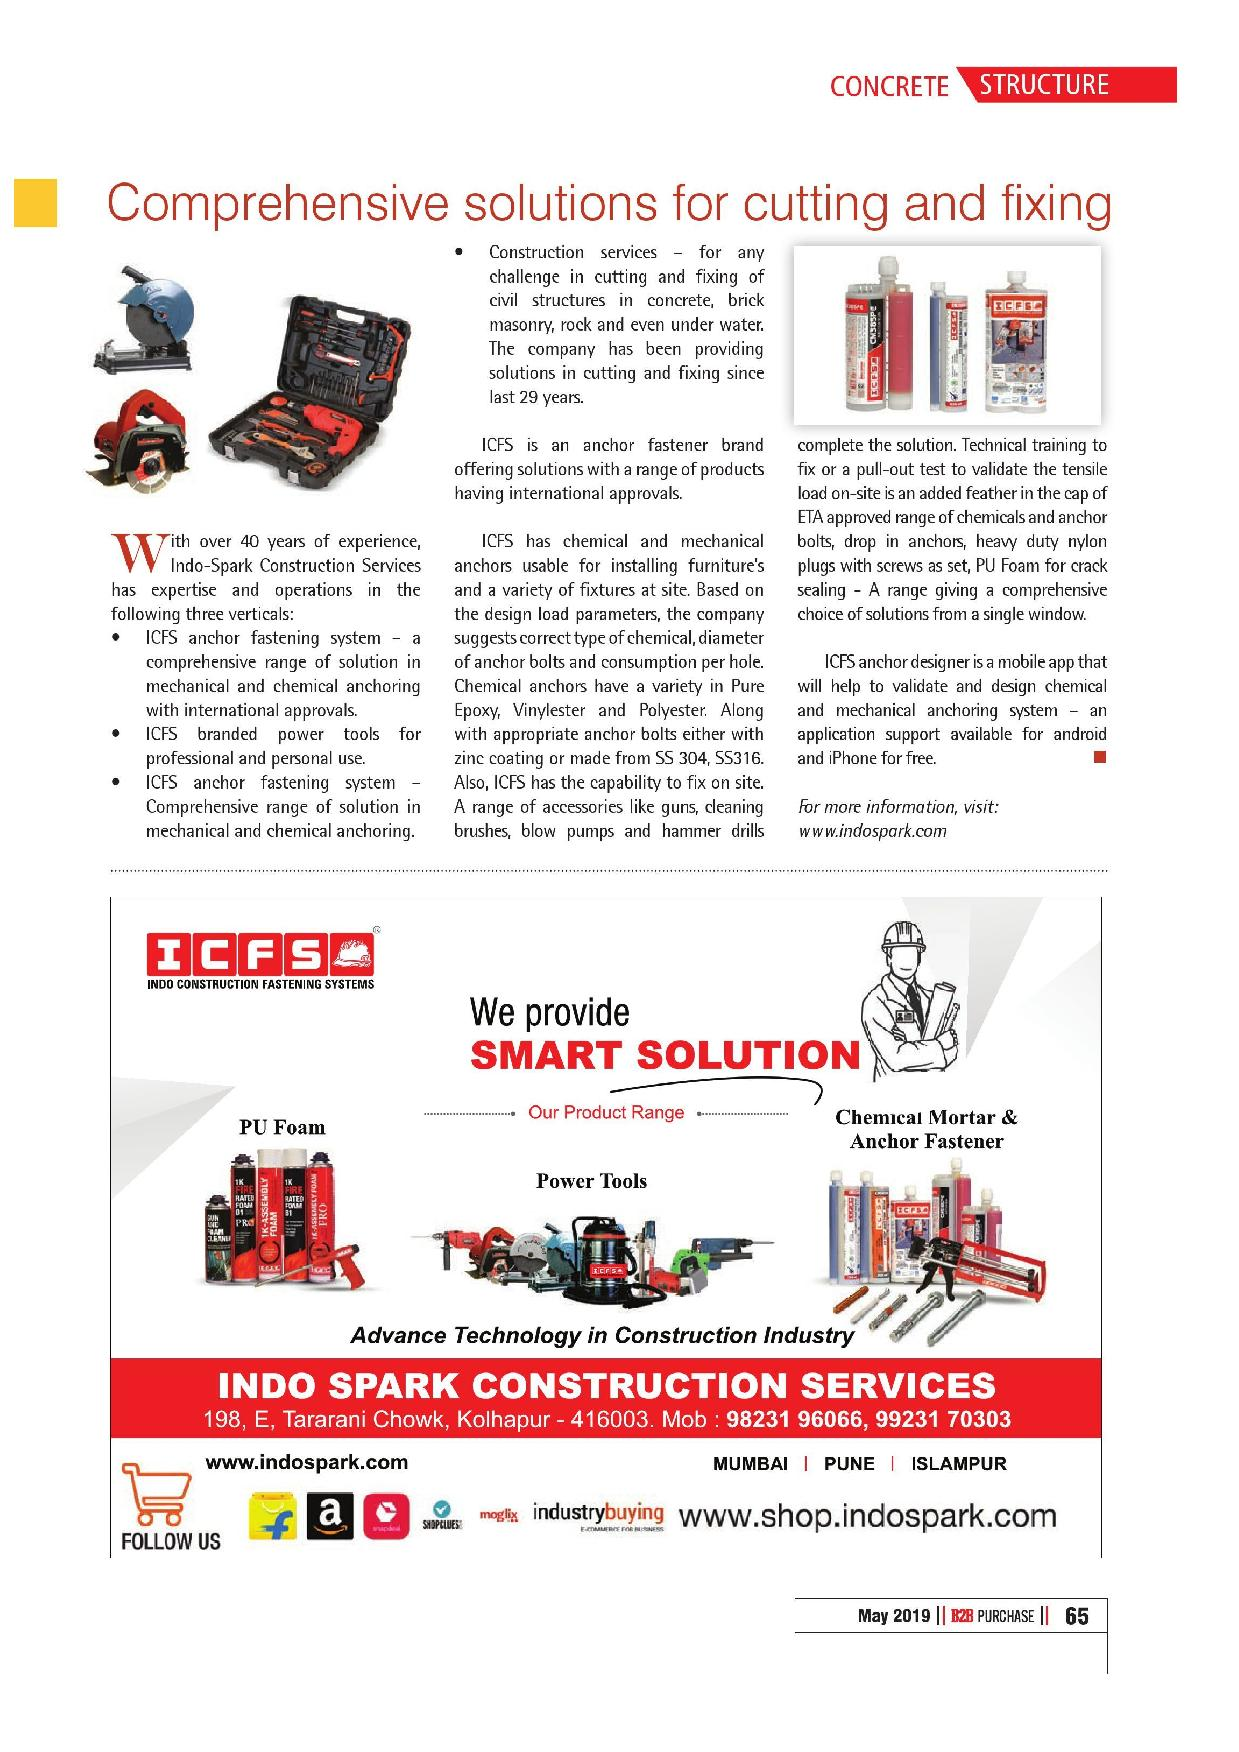 Comprehensive solutions for cutting & fixing